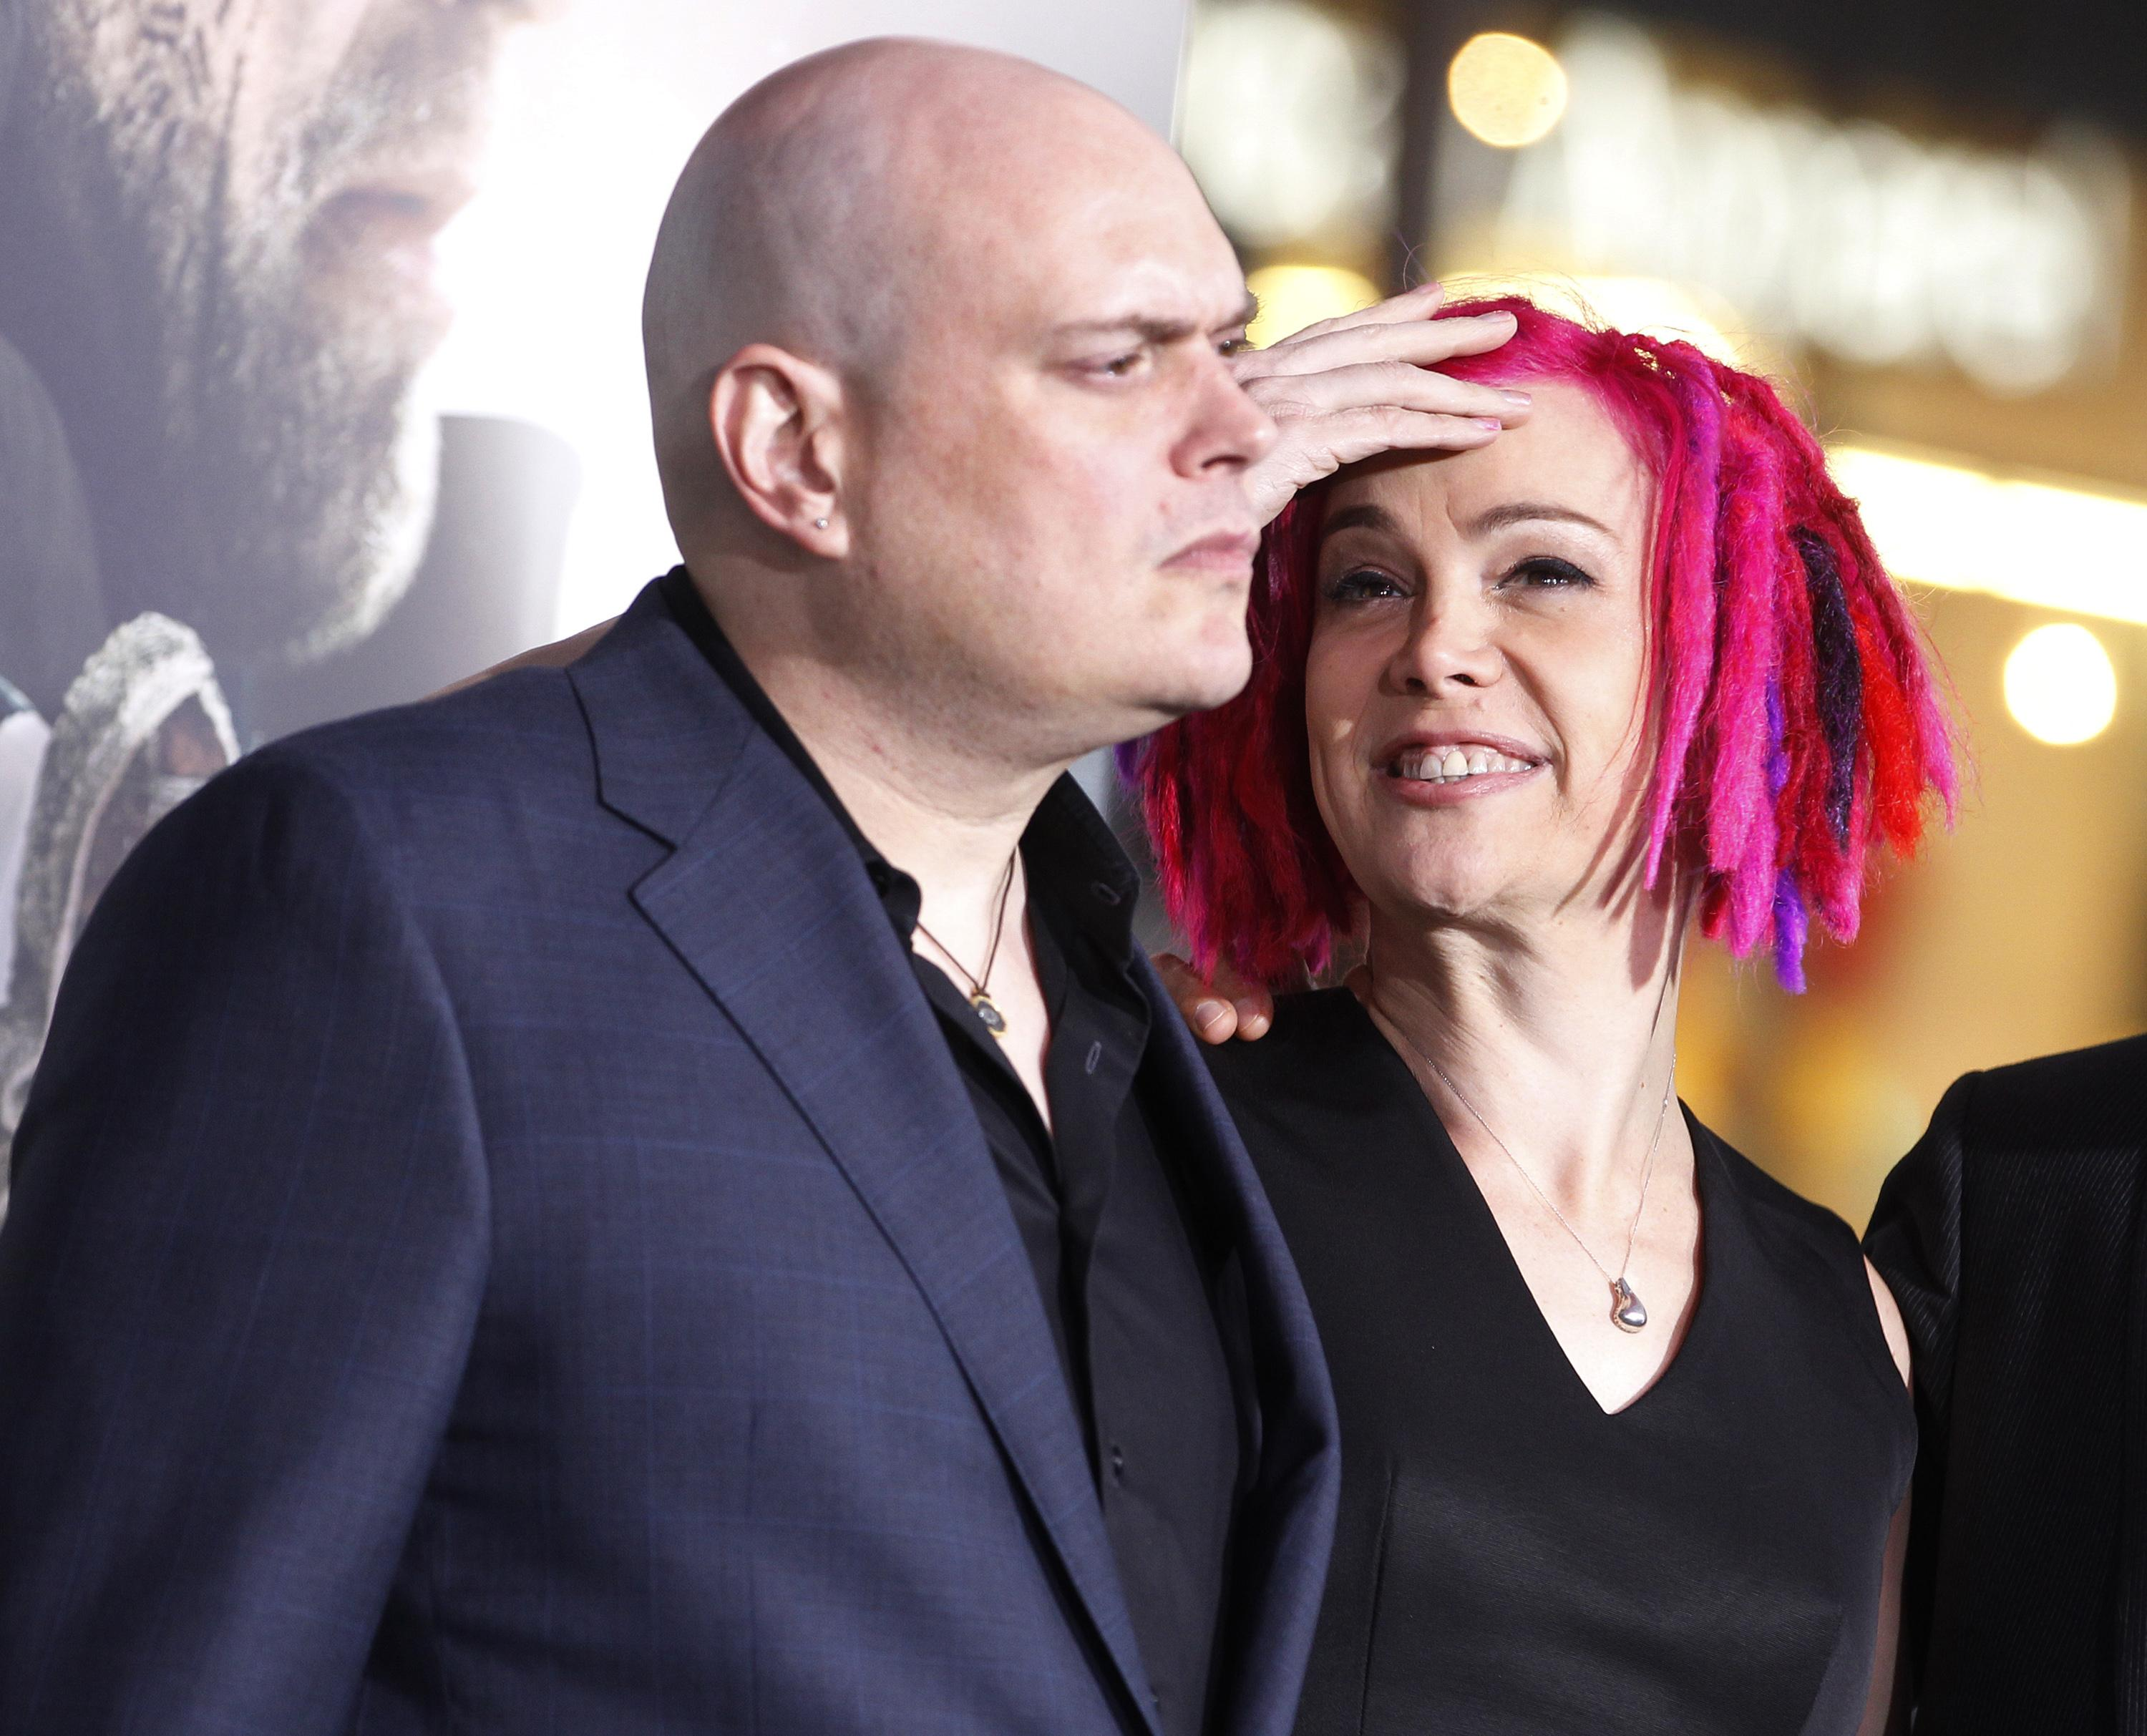 "Andy Wachowski (L) and sibling Lana Wachowski, the screenwriters, producers and directors of the new film ""Cloud Atlas,"" pose as they arrive for the film's premiere at Grauman's Chinese theatre in Hollywood, California, October 24, 2012. Lana Wachowski, who was formerly Larry Wachowski, has become the first major Hollywood director to publicly come out as transgender. Wachowski and her brother Andy directed the hit film ""The Matrix."" REUTERS/Fred Prouser (UNITED STATES - Tags: ENTERTAINMENT) - RTR39JX6"